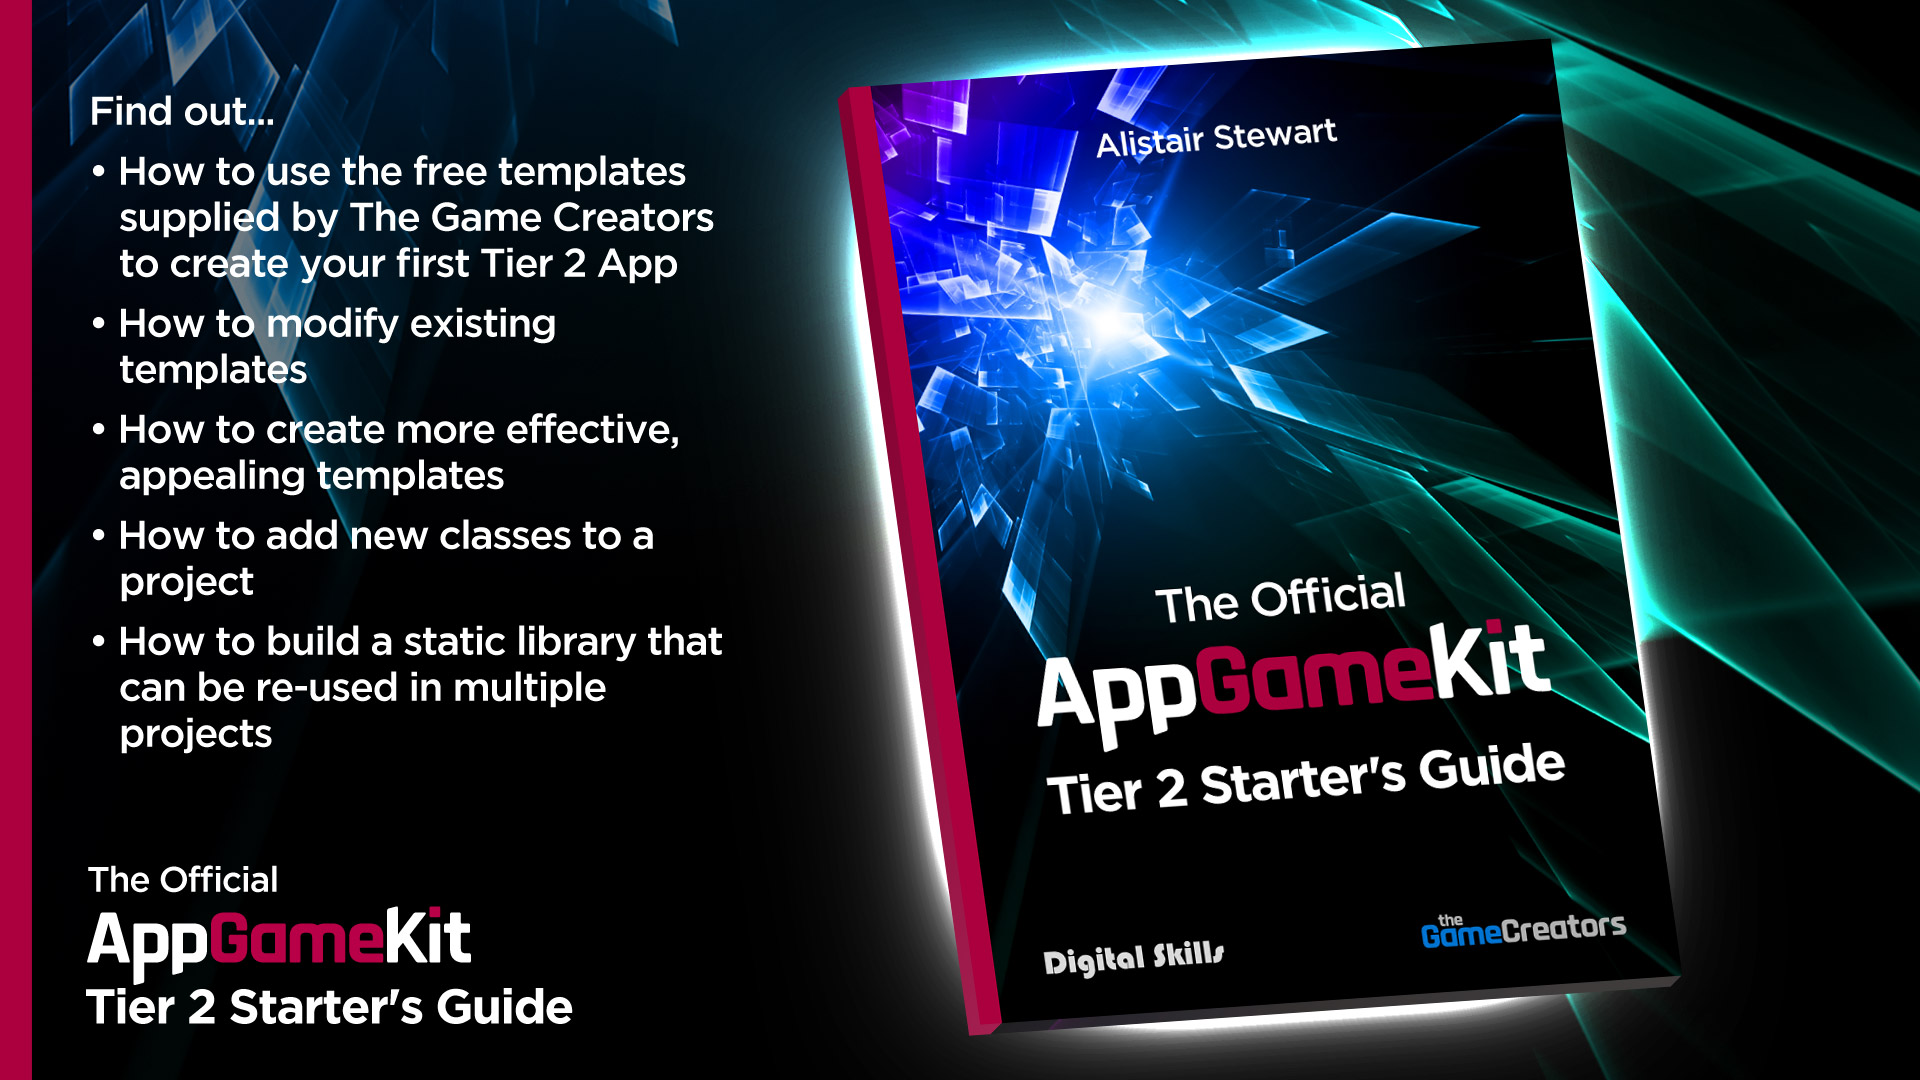 The Official AppGameKit Tier 2 Starter's Guide screenshot